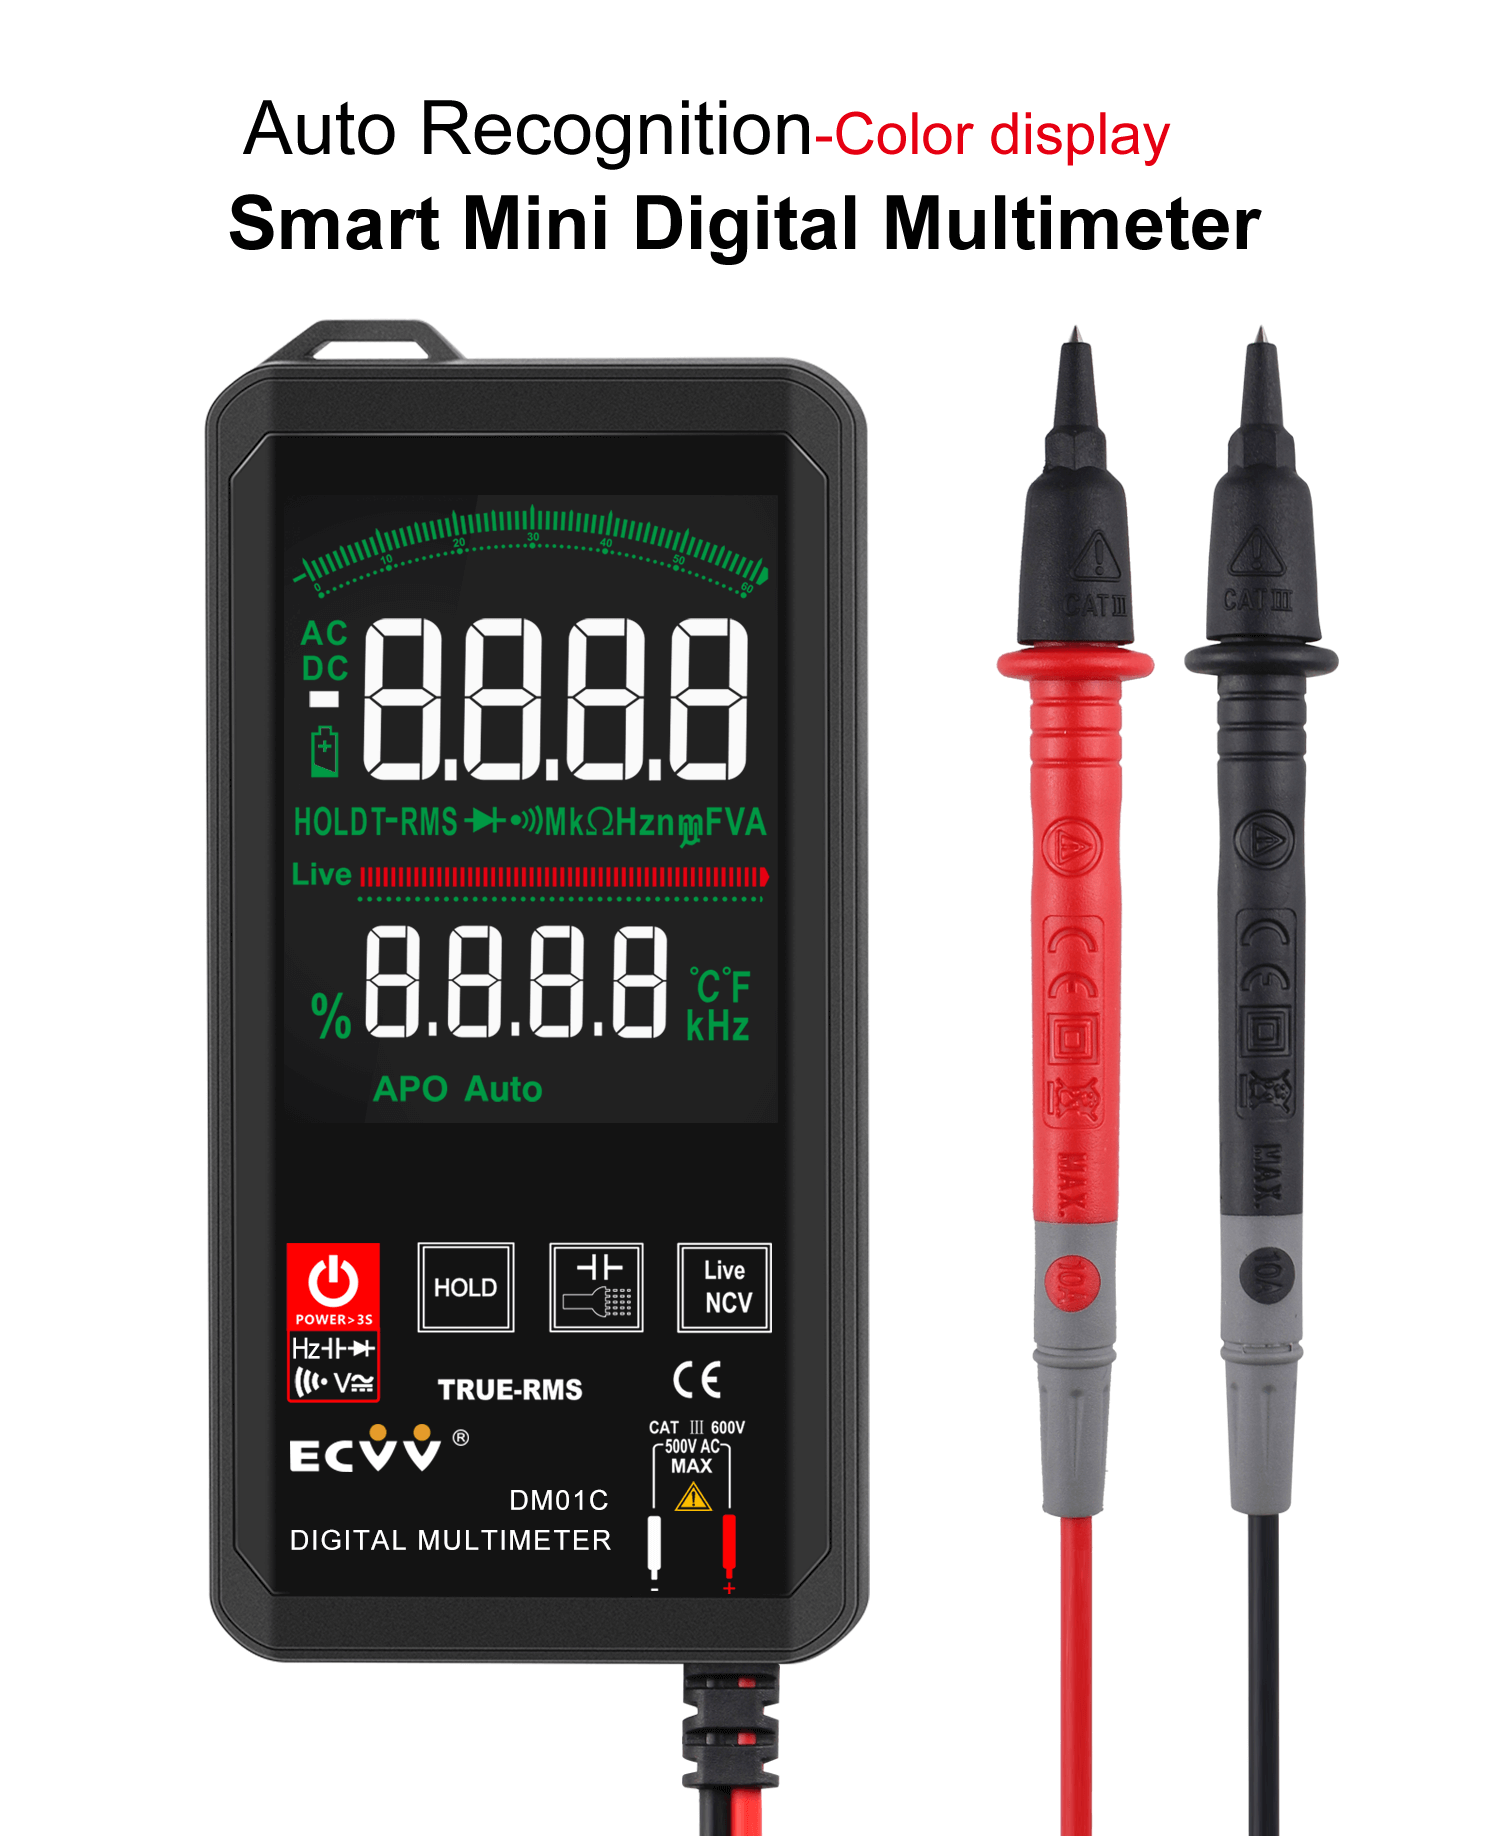 ECVV Touch Screen Digital Multimeter Color Display Auto Recognition-1